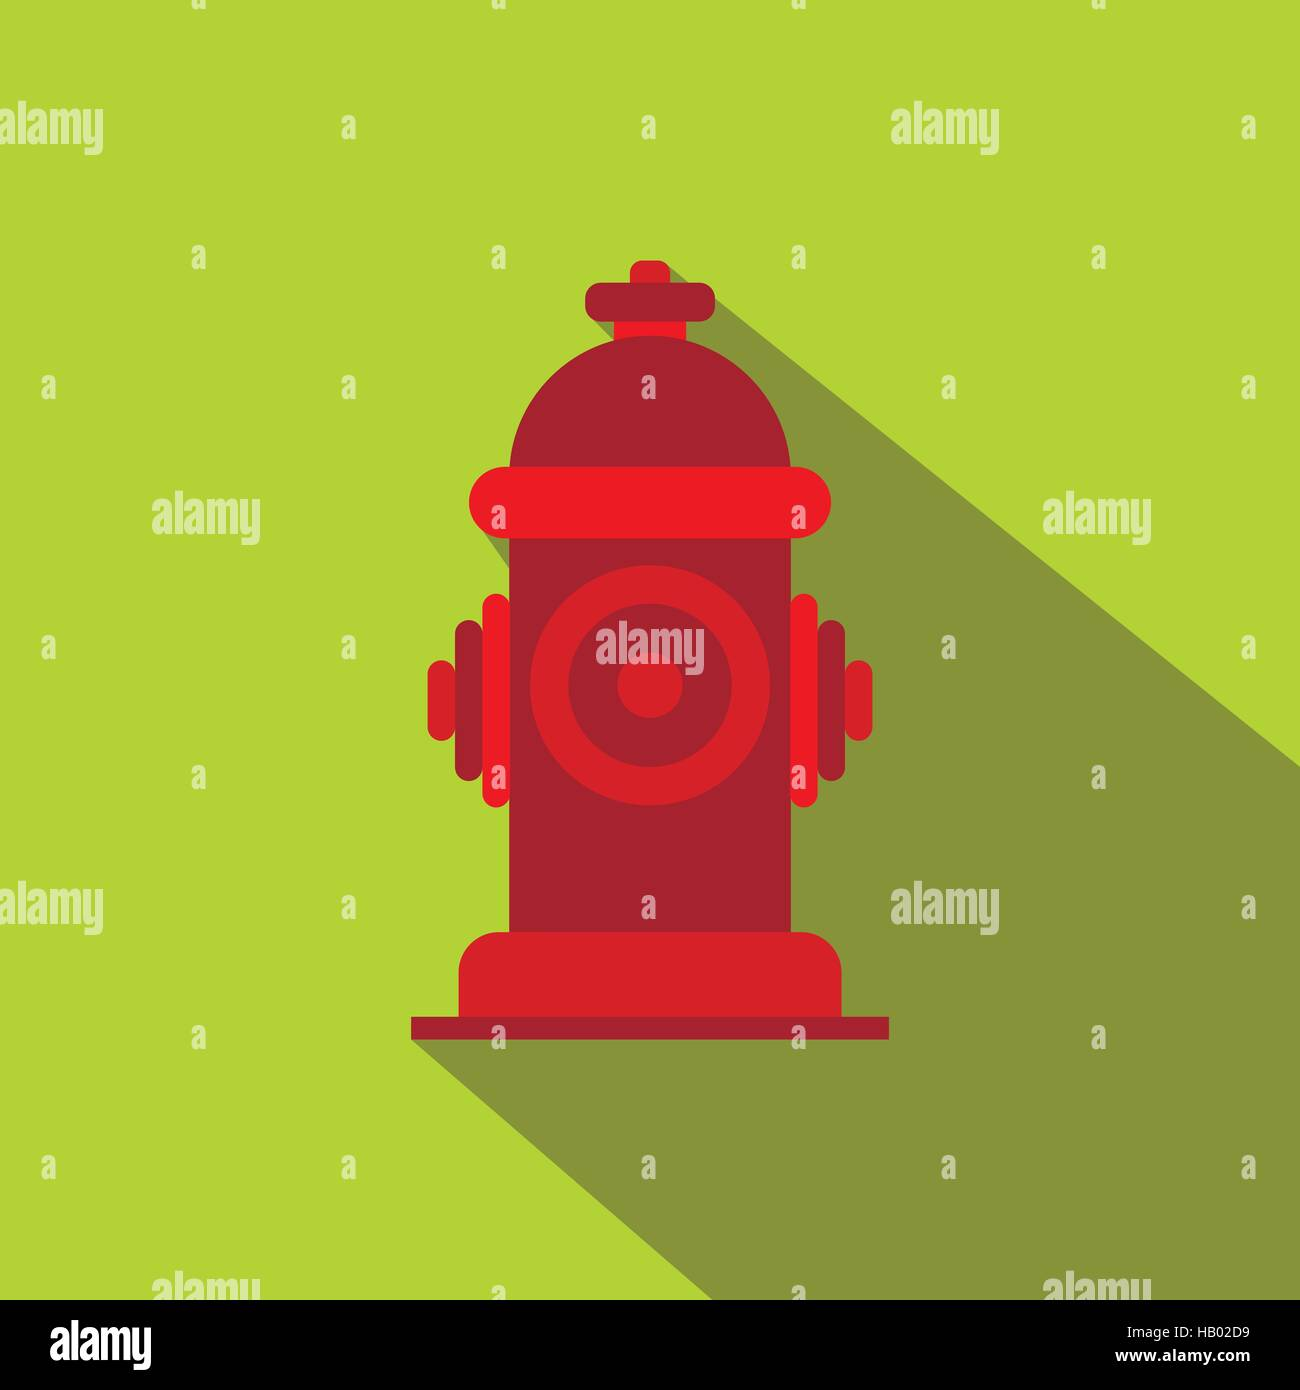 Fire hydrant flat icon - Stock Image